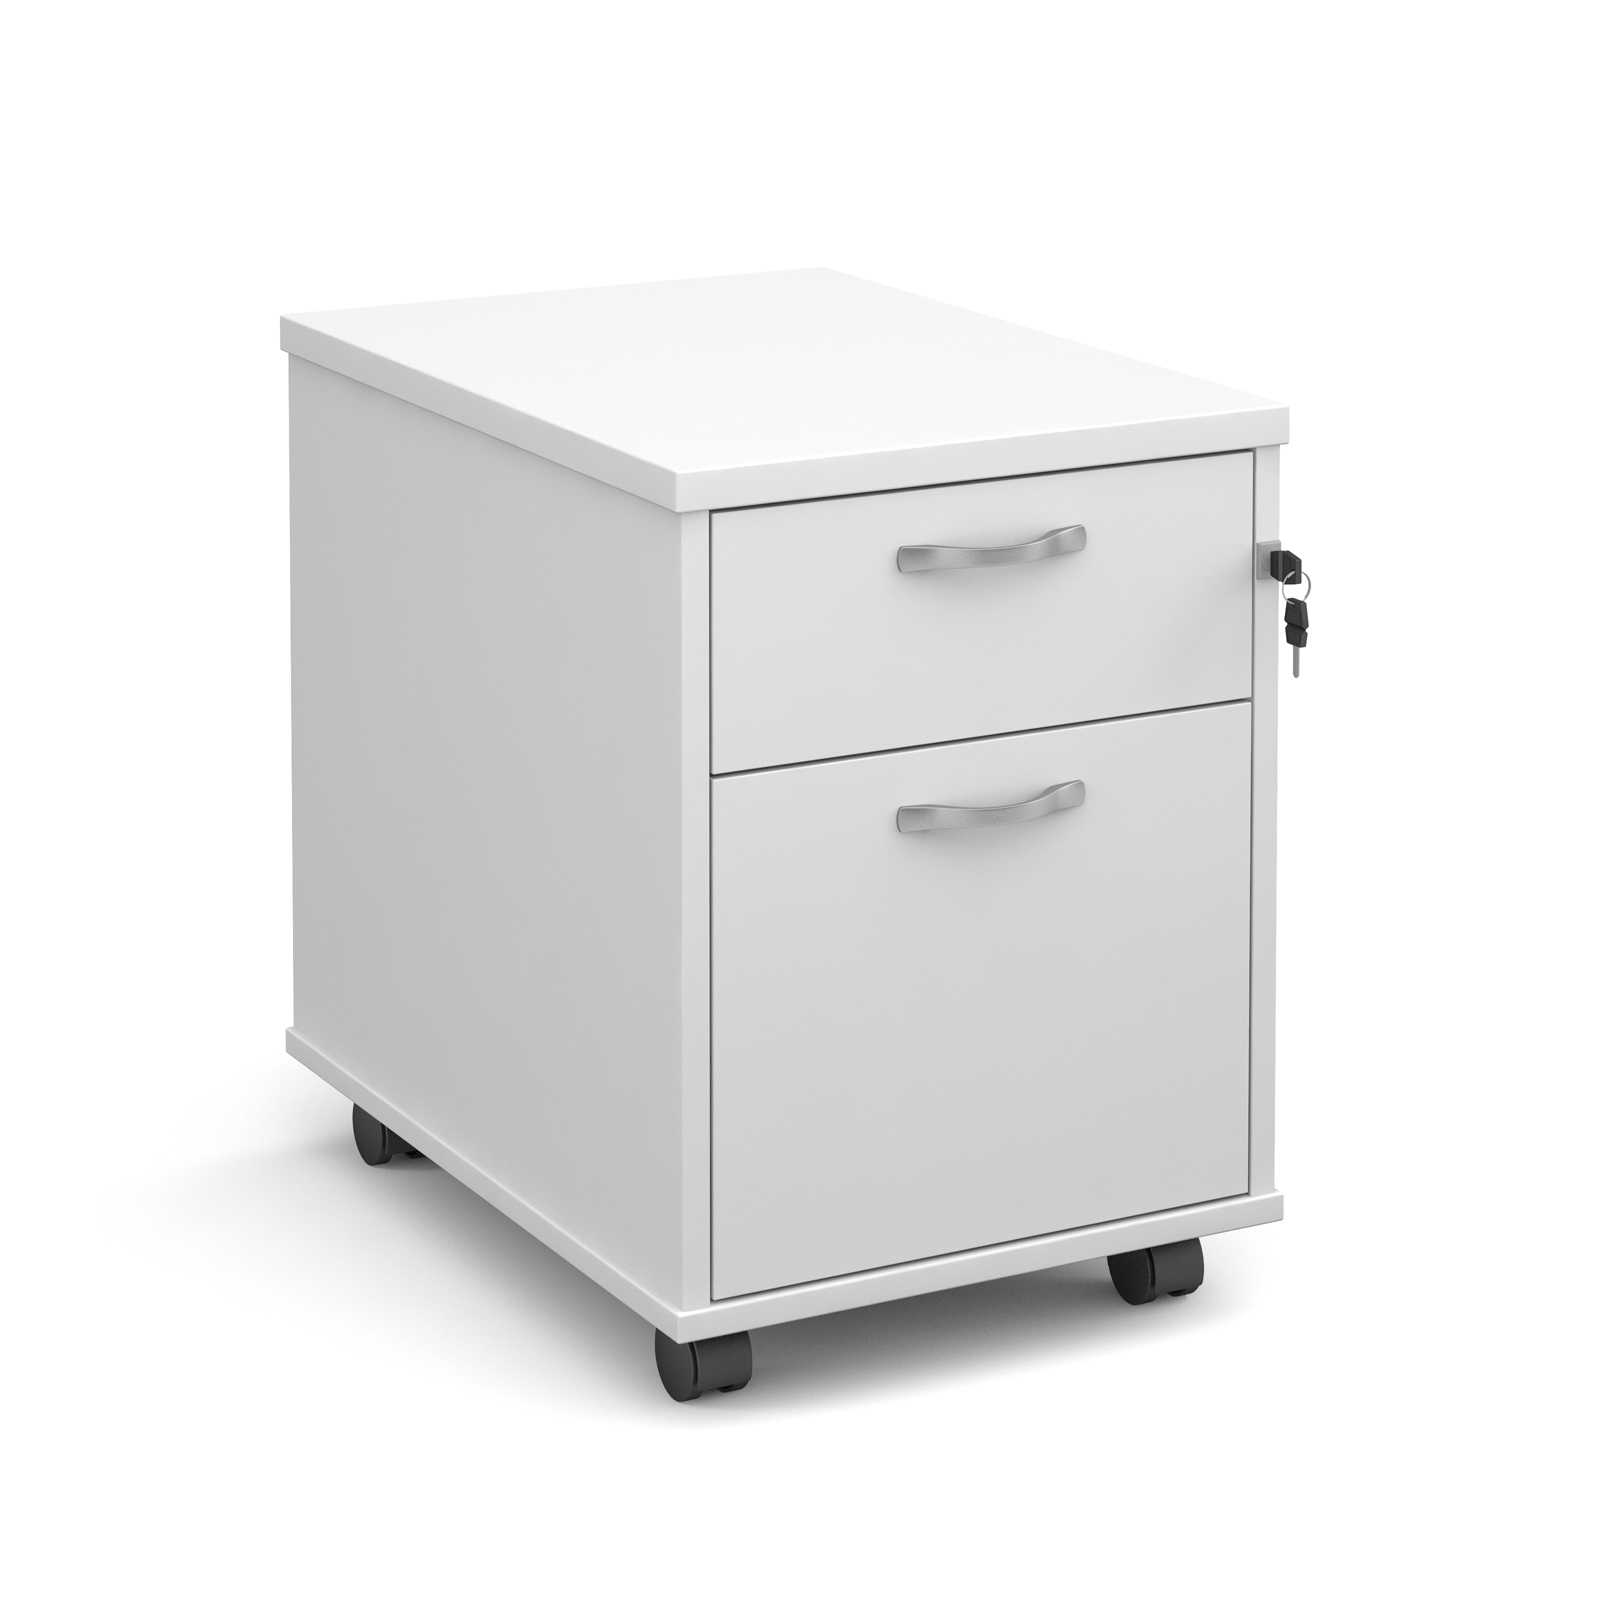 2 Drawer Mobile Pedestal in white